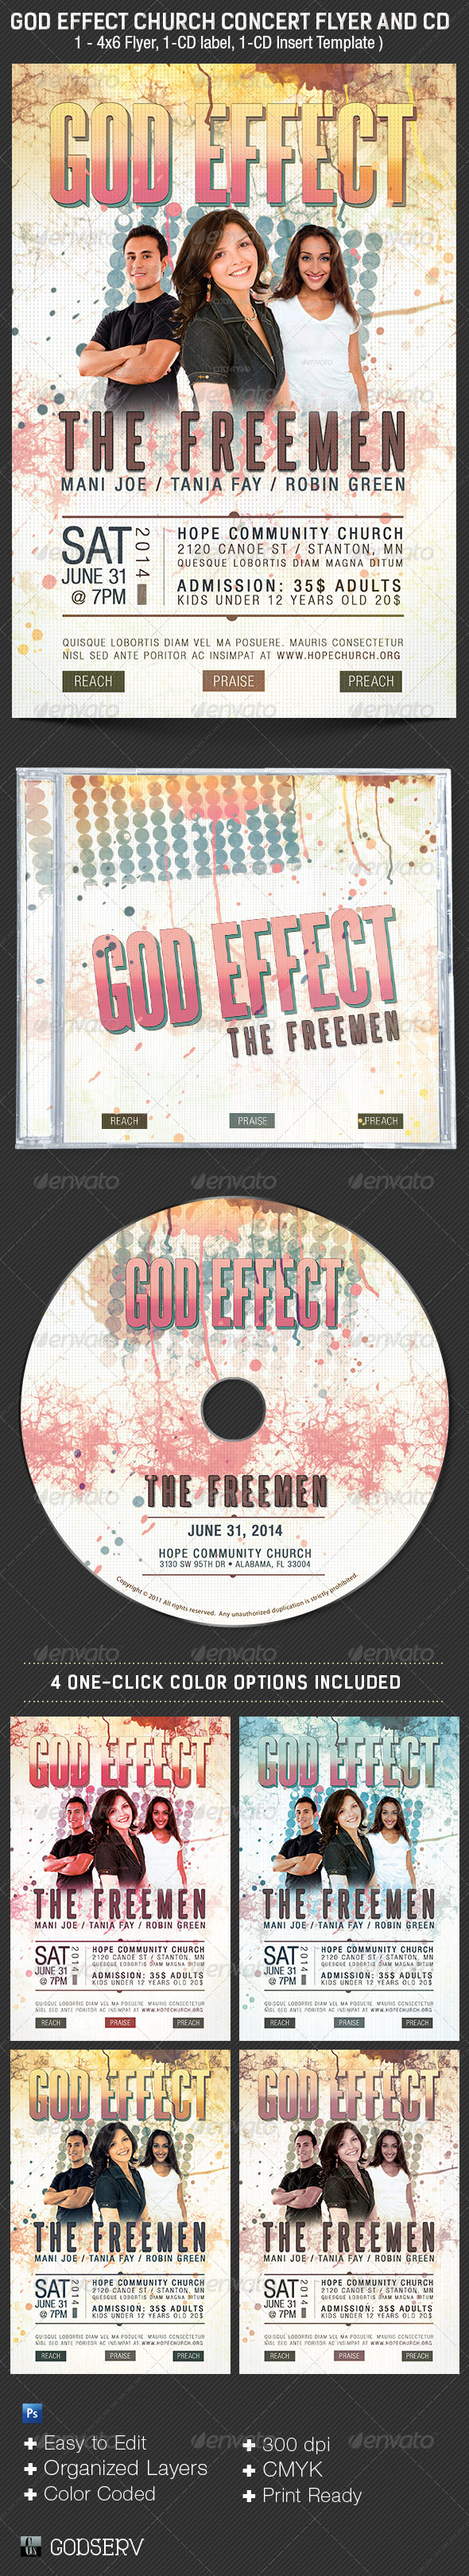 God Effect Church Concert Flyer CD Template - Church Flyers